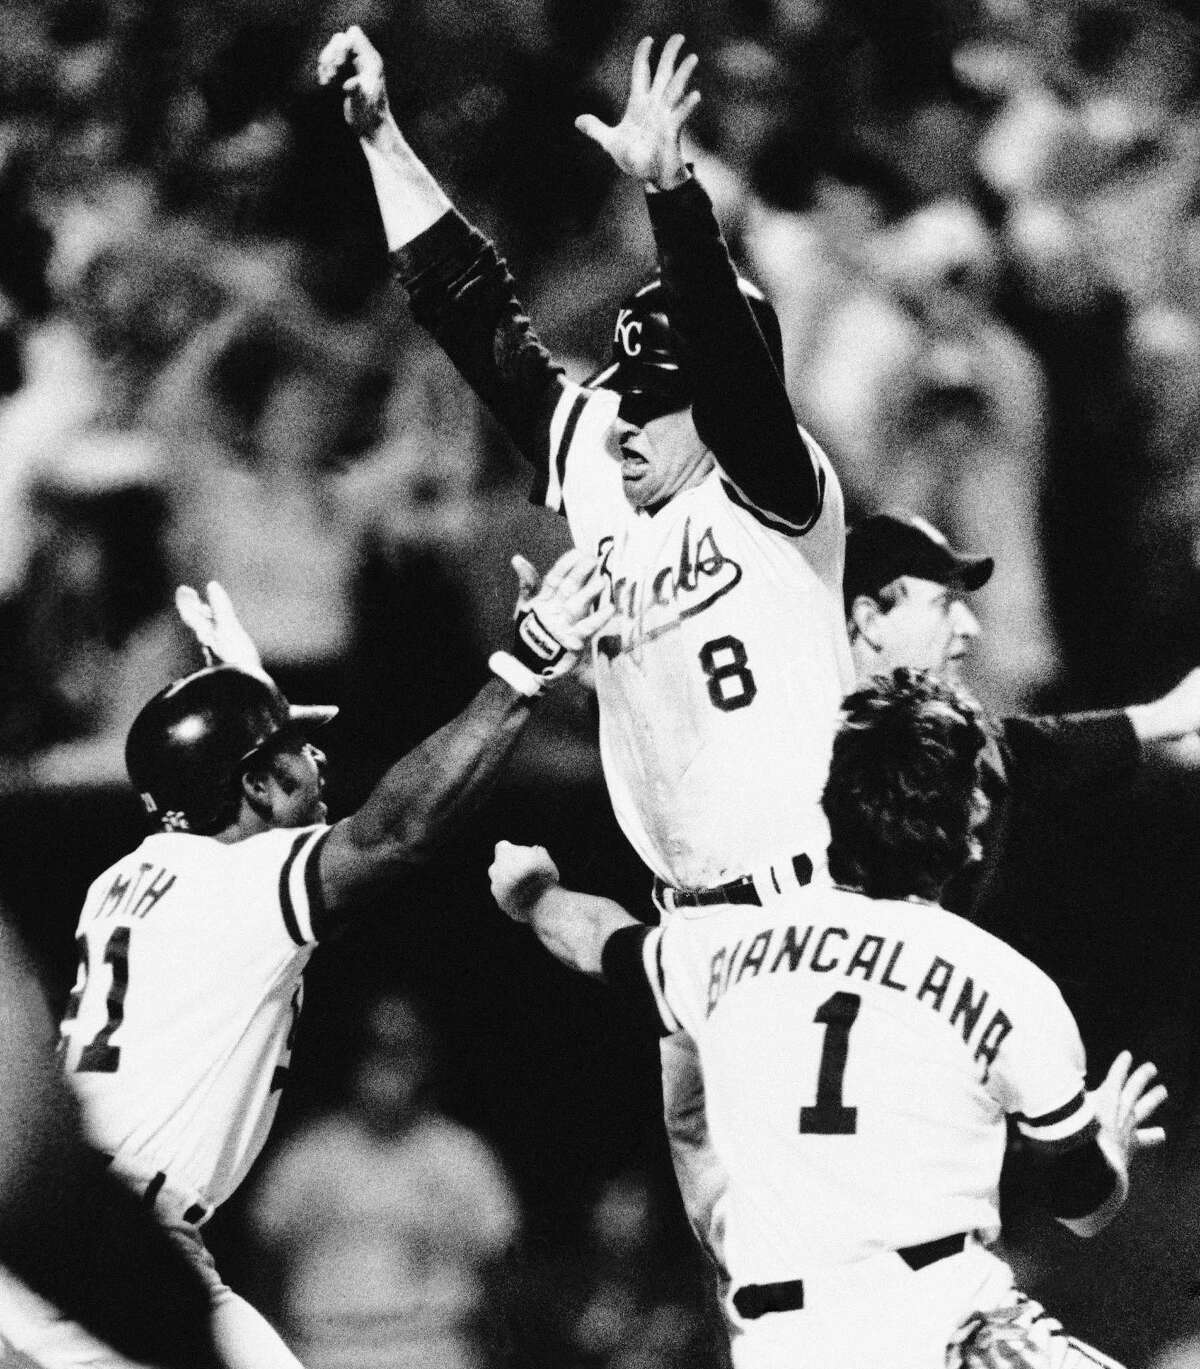 Kansas City Royals Jim Sundberg (8) leaps into the arms of teammates Lonnie Smith, left, and Buddy Biancalana after Sundberg scored in the ninth inning to beat the St. Louis Cardinals, 2-1, in a World Series game, Saturday, Oct. 26, 1985, Kansas City, Mo. (AP Photo/Rusty Kennedy)